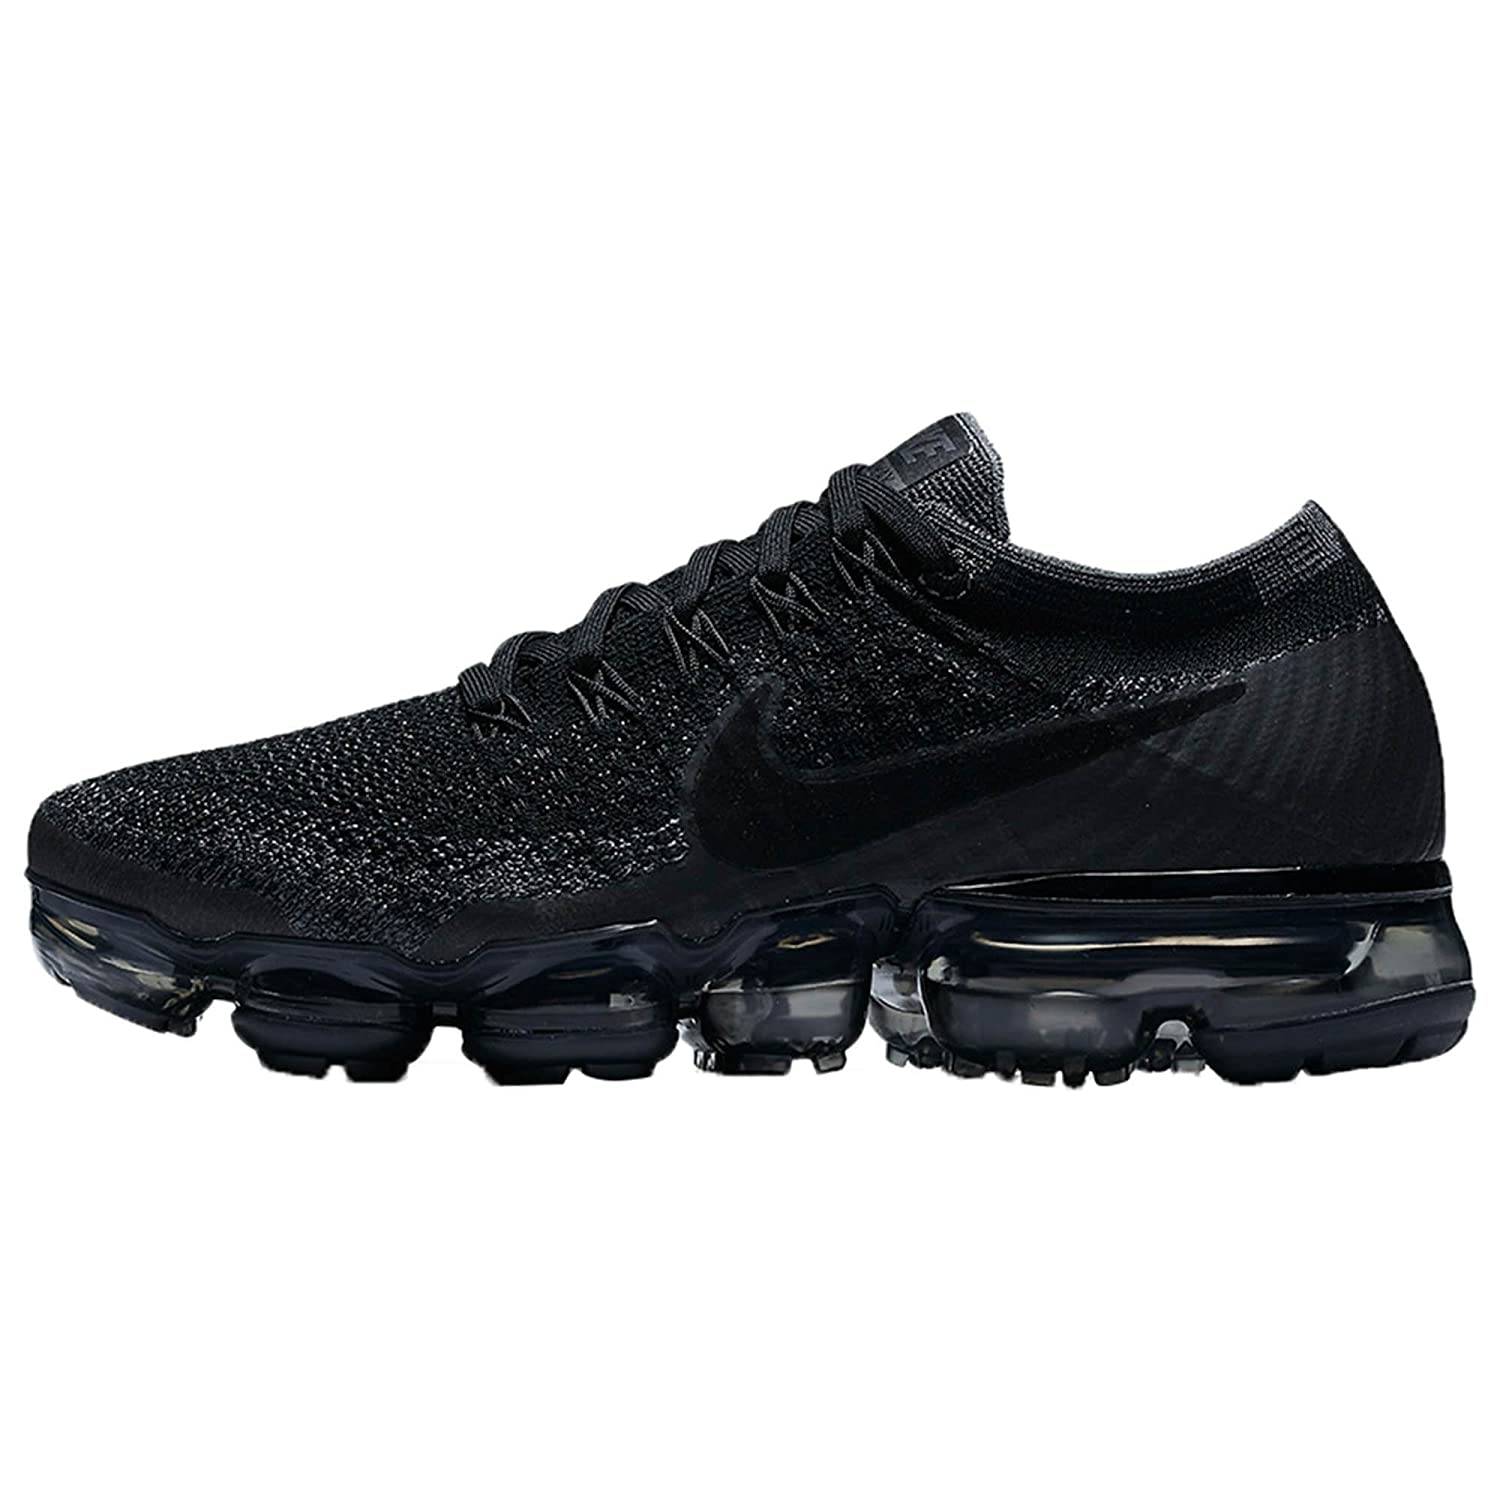 e2e12ea16e1 WMNS NIKE AIR VAPORMAX FLYKNIT - 849557-006 - SIZE 7  Amazon.ca  Shoes    Handbags